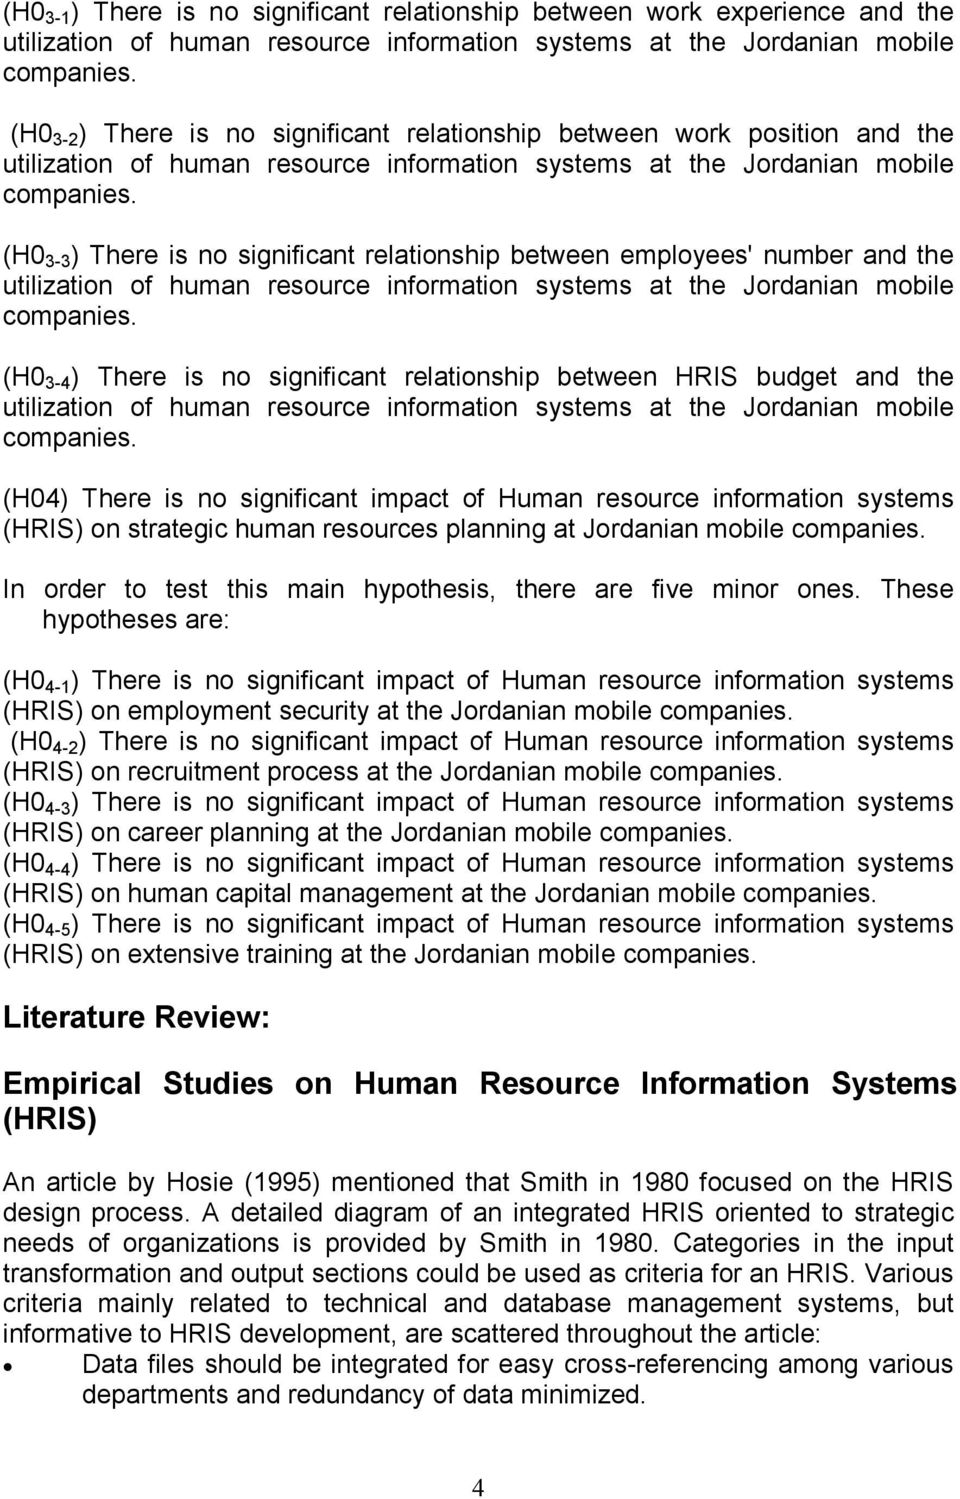 (H0 3-3 ) There is no significant relationship between employees' number and the utilization of human resource information systems at the Jordanian mobile companies.